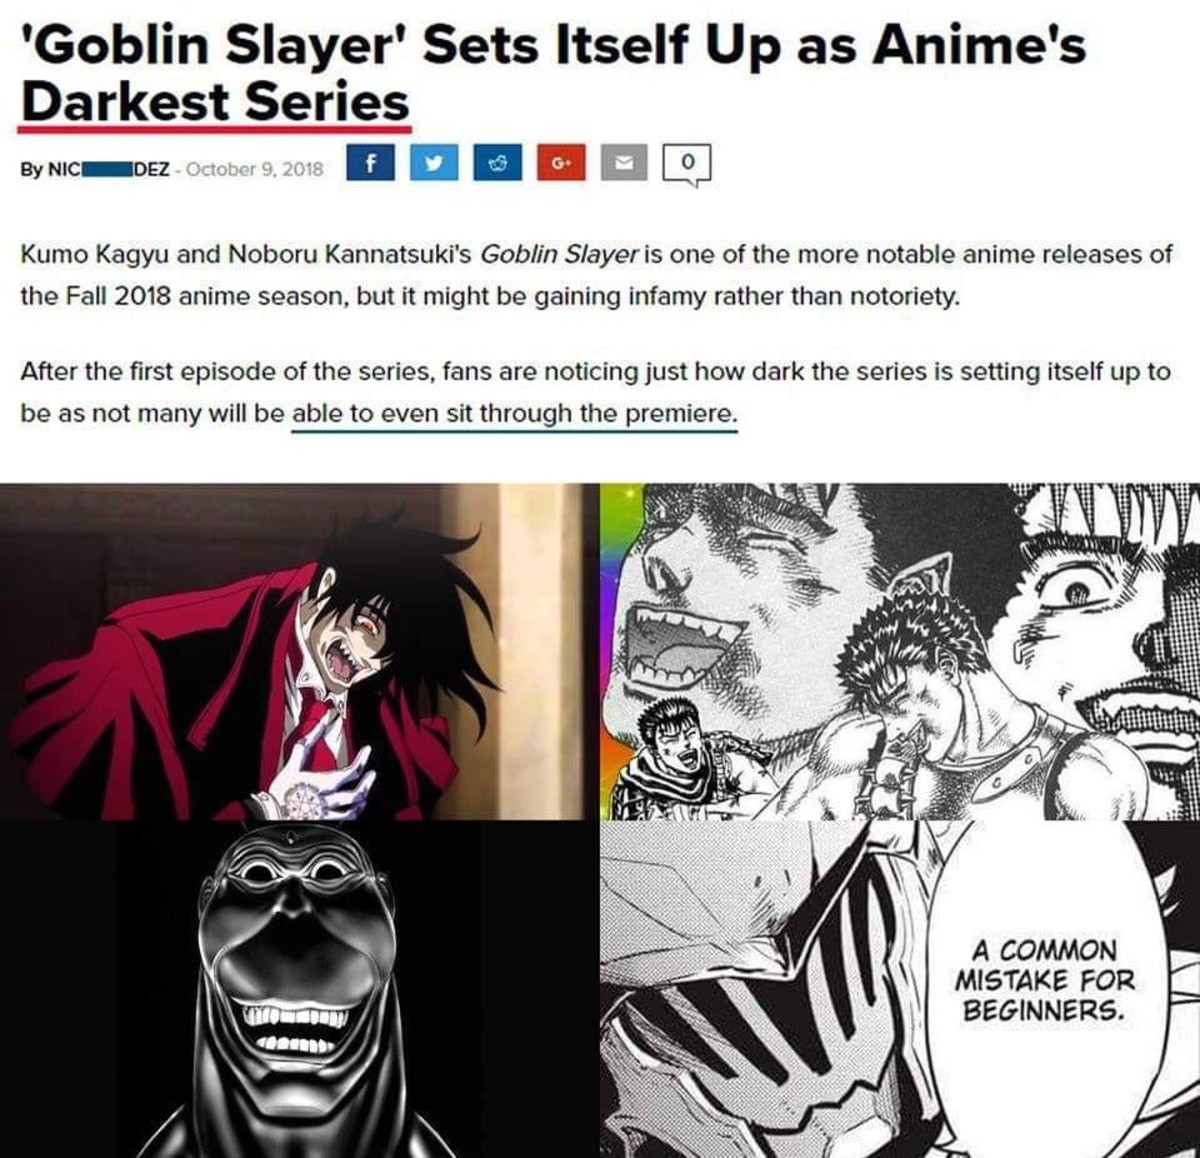 """something something Dark souls of anime. join list: CartoonsGalore (168 subs)Mention History.. The one difference between goblin slayer and the of dark animes out there is that GS successfully baited normies by having the appearance of your average """""""